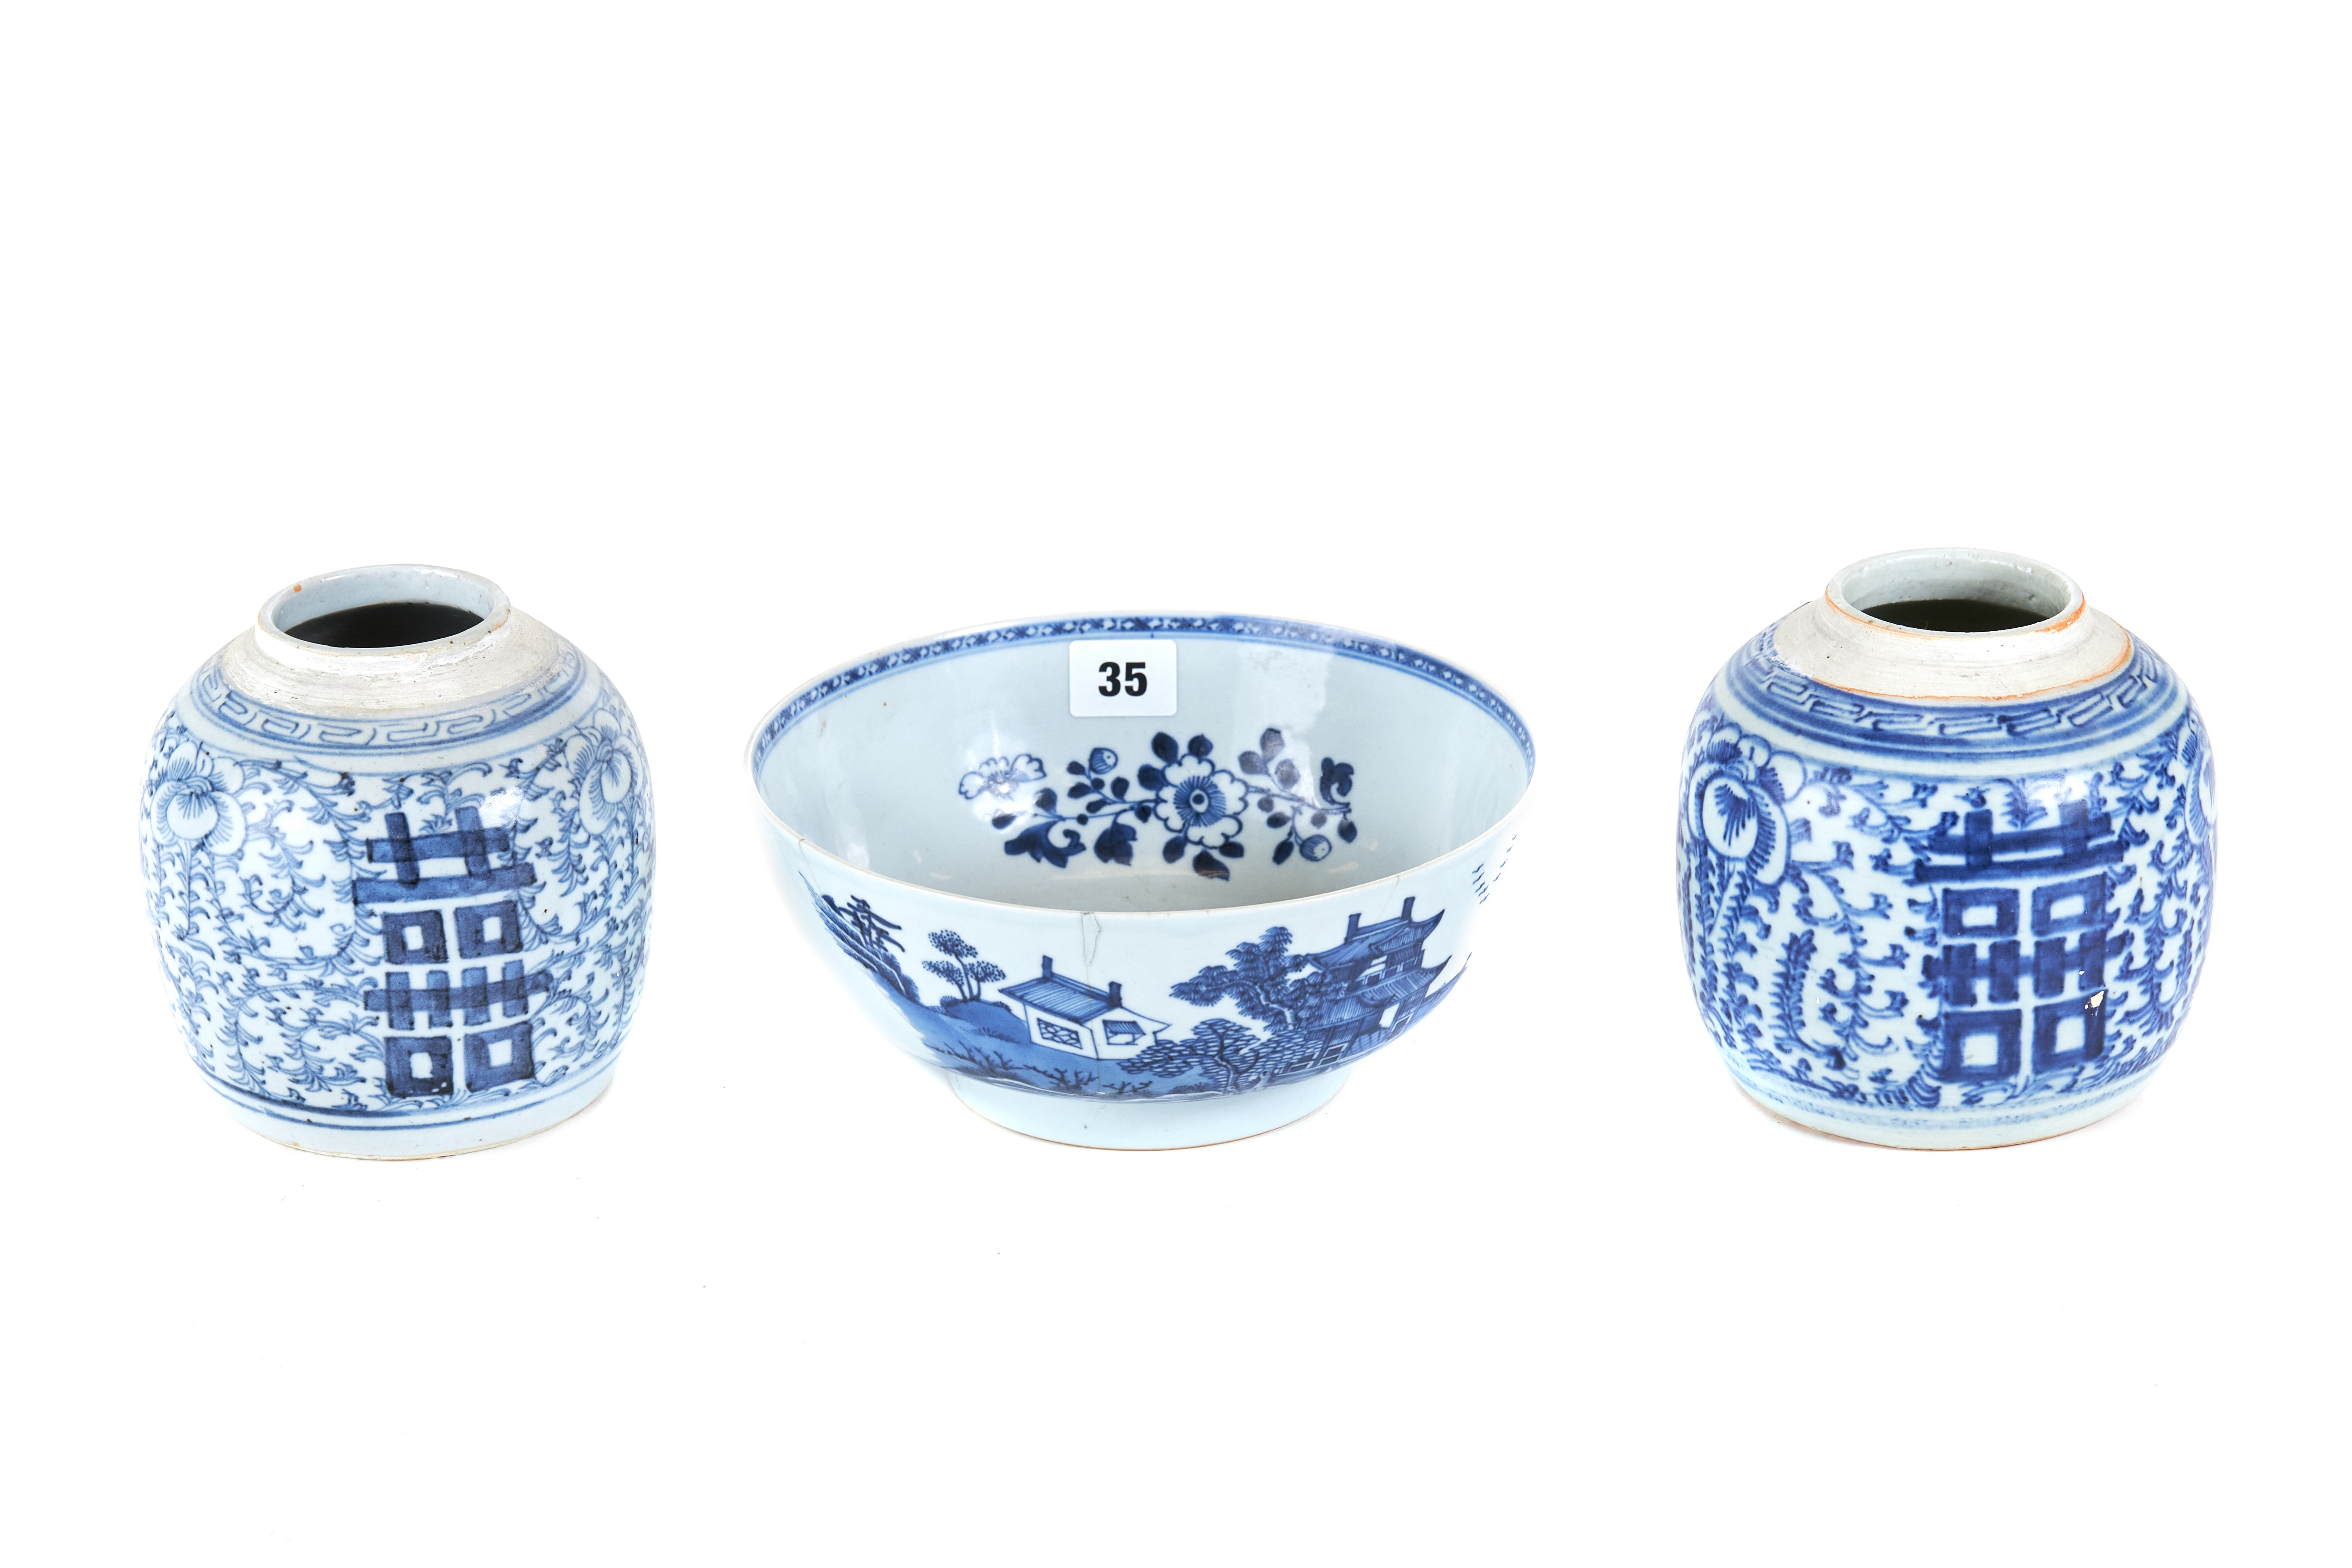 AN EARLY 19TH CENTURY CHINESE PORCELAIN BOWL decorated in underglaze blue with pagoda landscapes